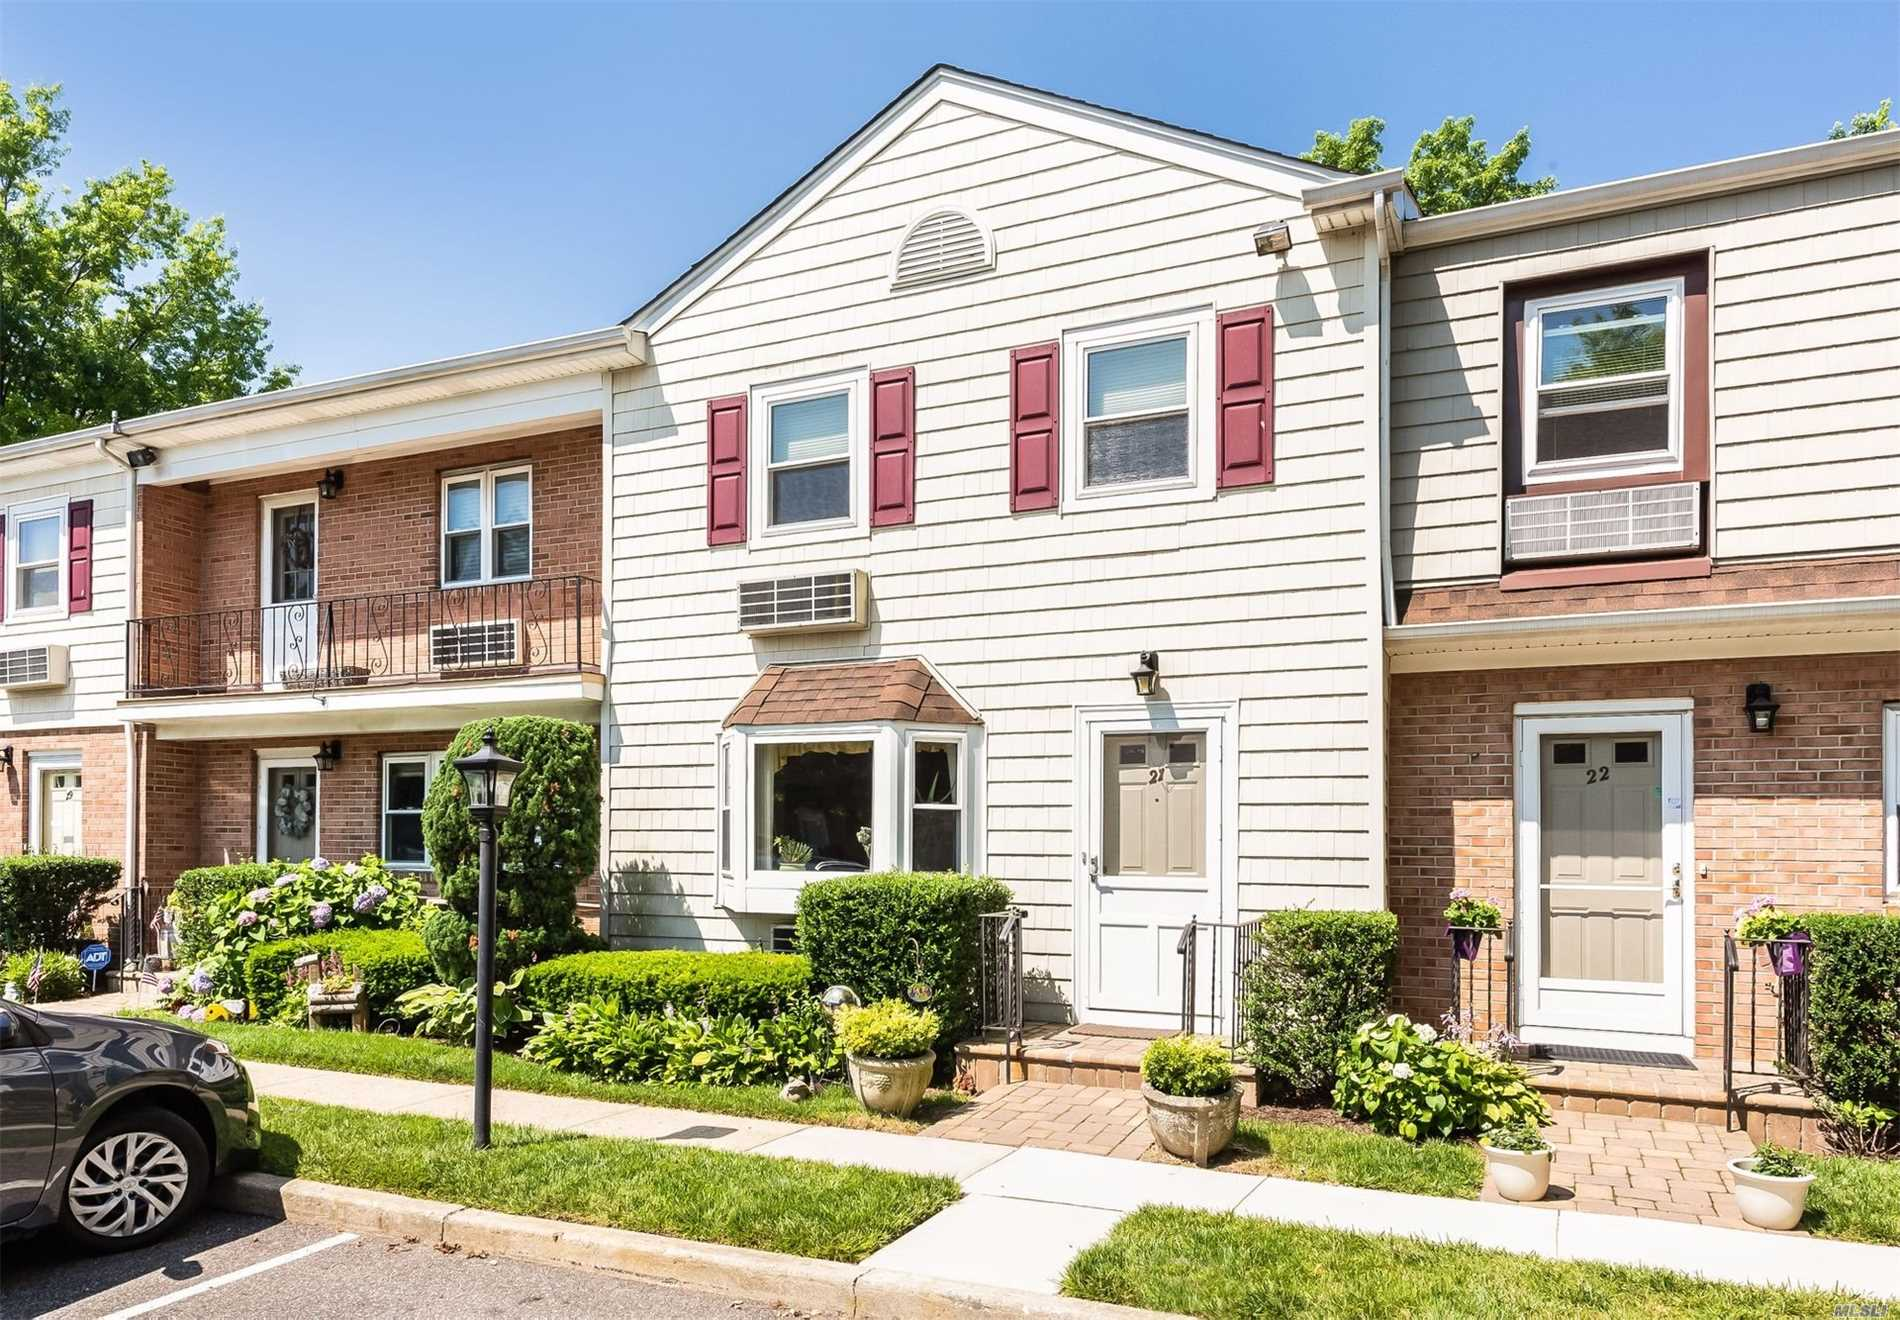 Property for sale at 70 Maine Ave, Rockville Centre,  NY 11570